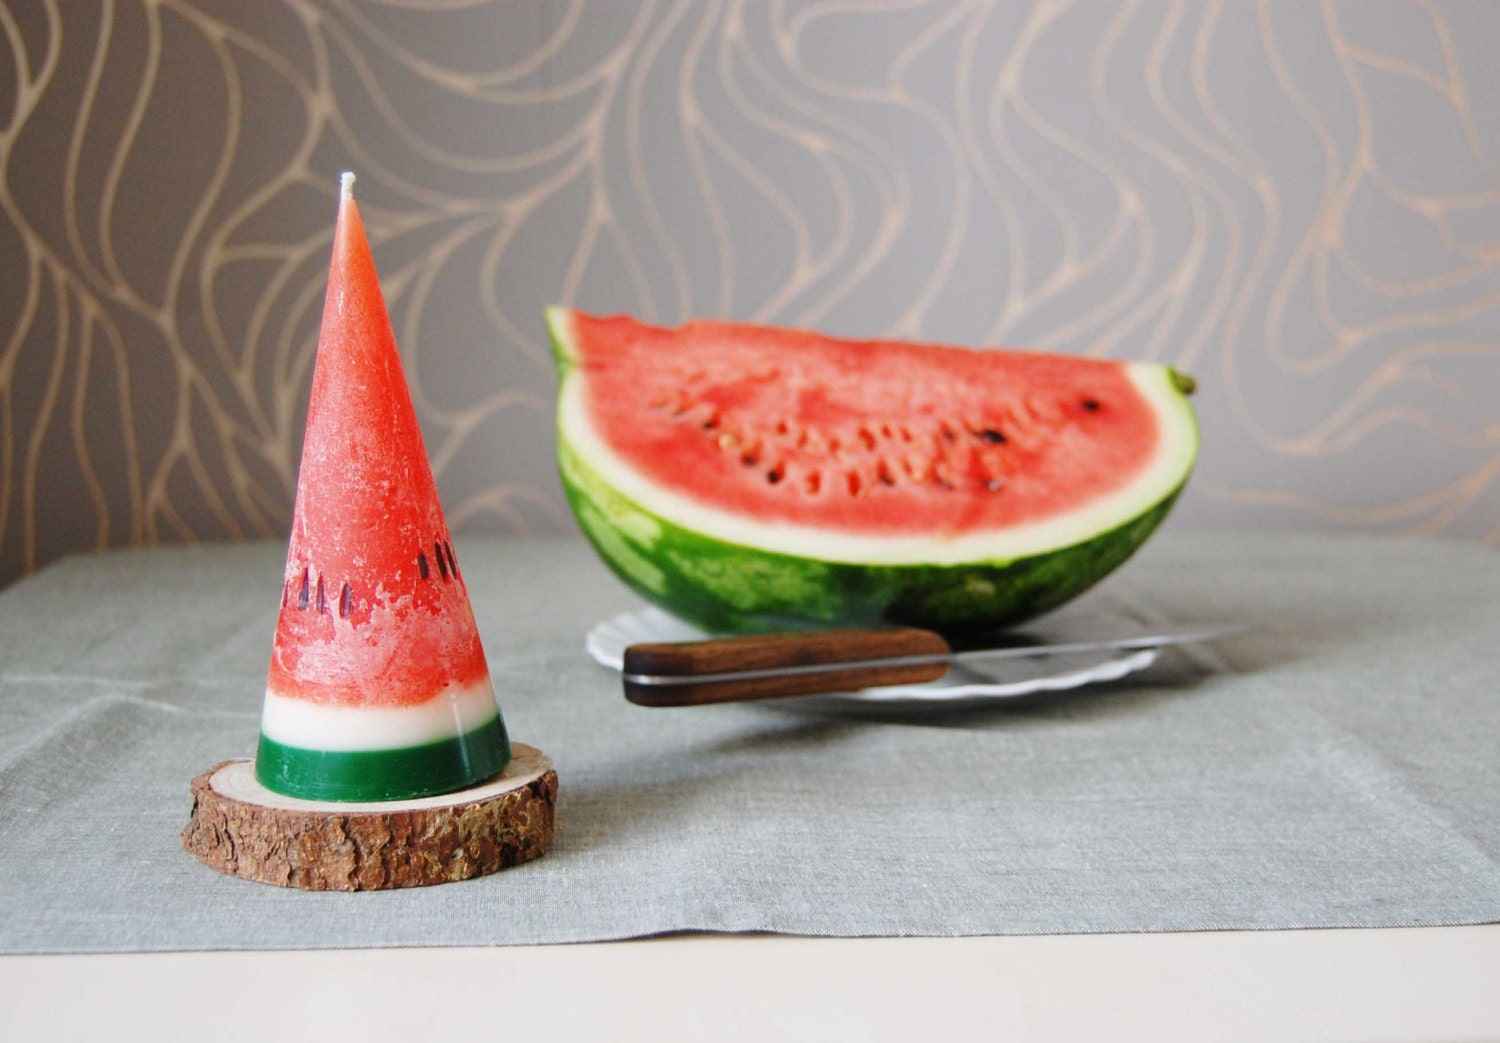 Watermelon Candle Hand Painted Cone Candle Fun Party Kids Birthday Candle  Home Decor - LessCandles